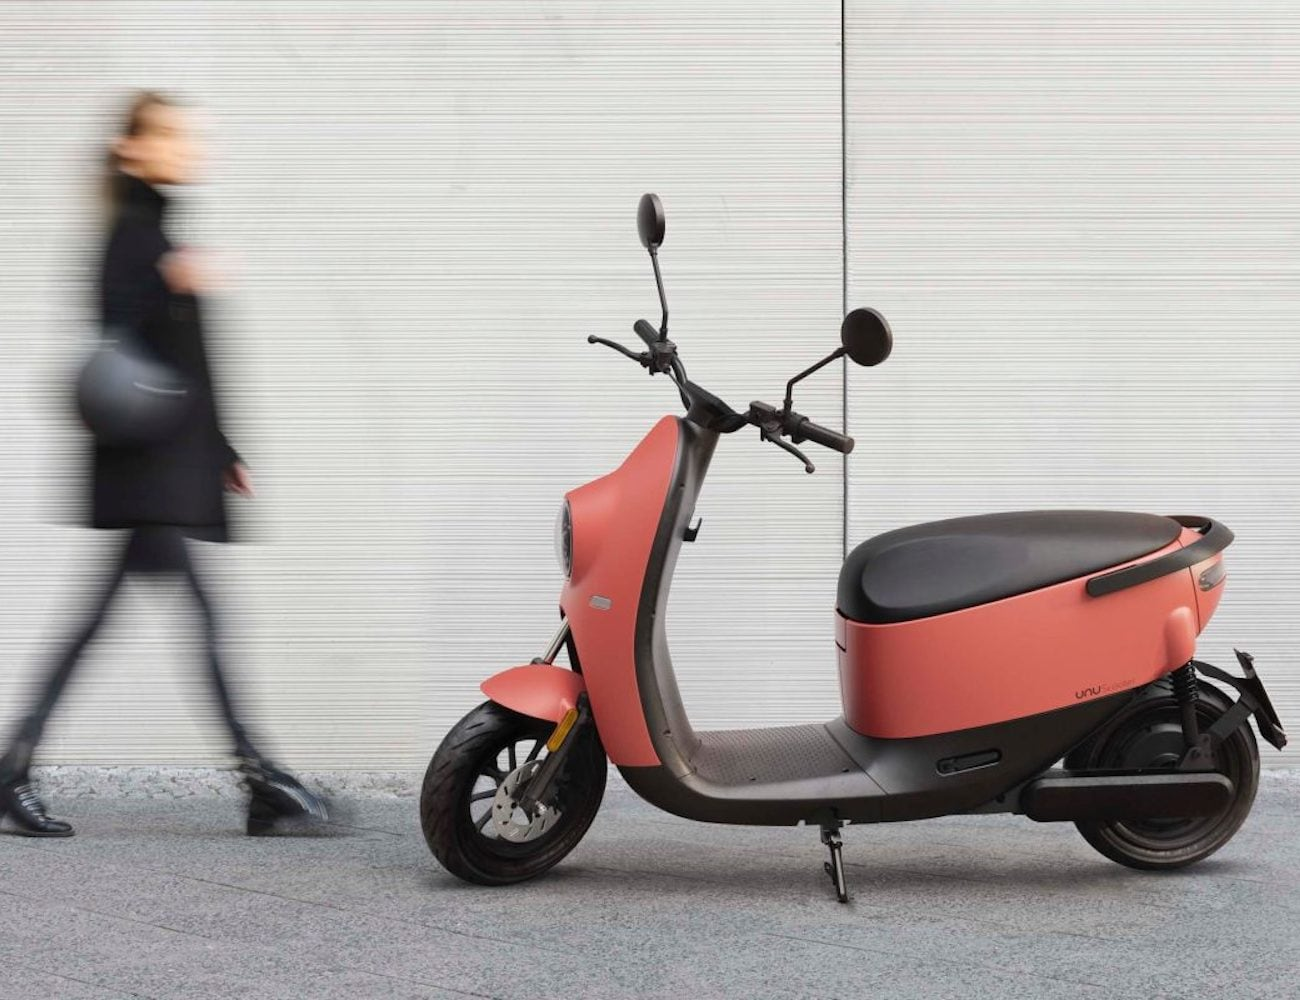 unu Scooter Smart Electric Vehicle has a completely silent motor